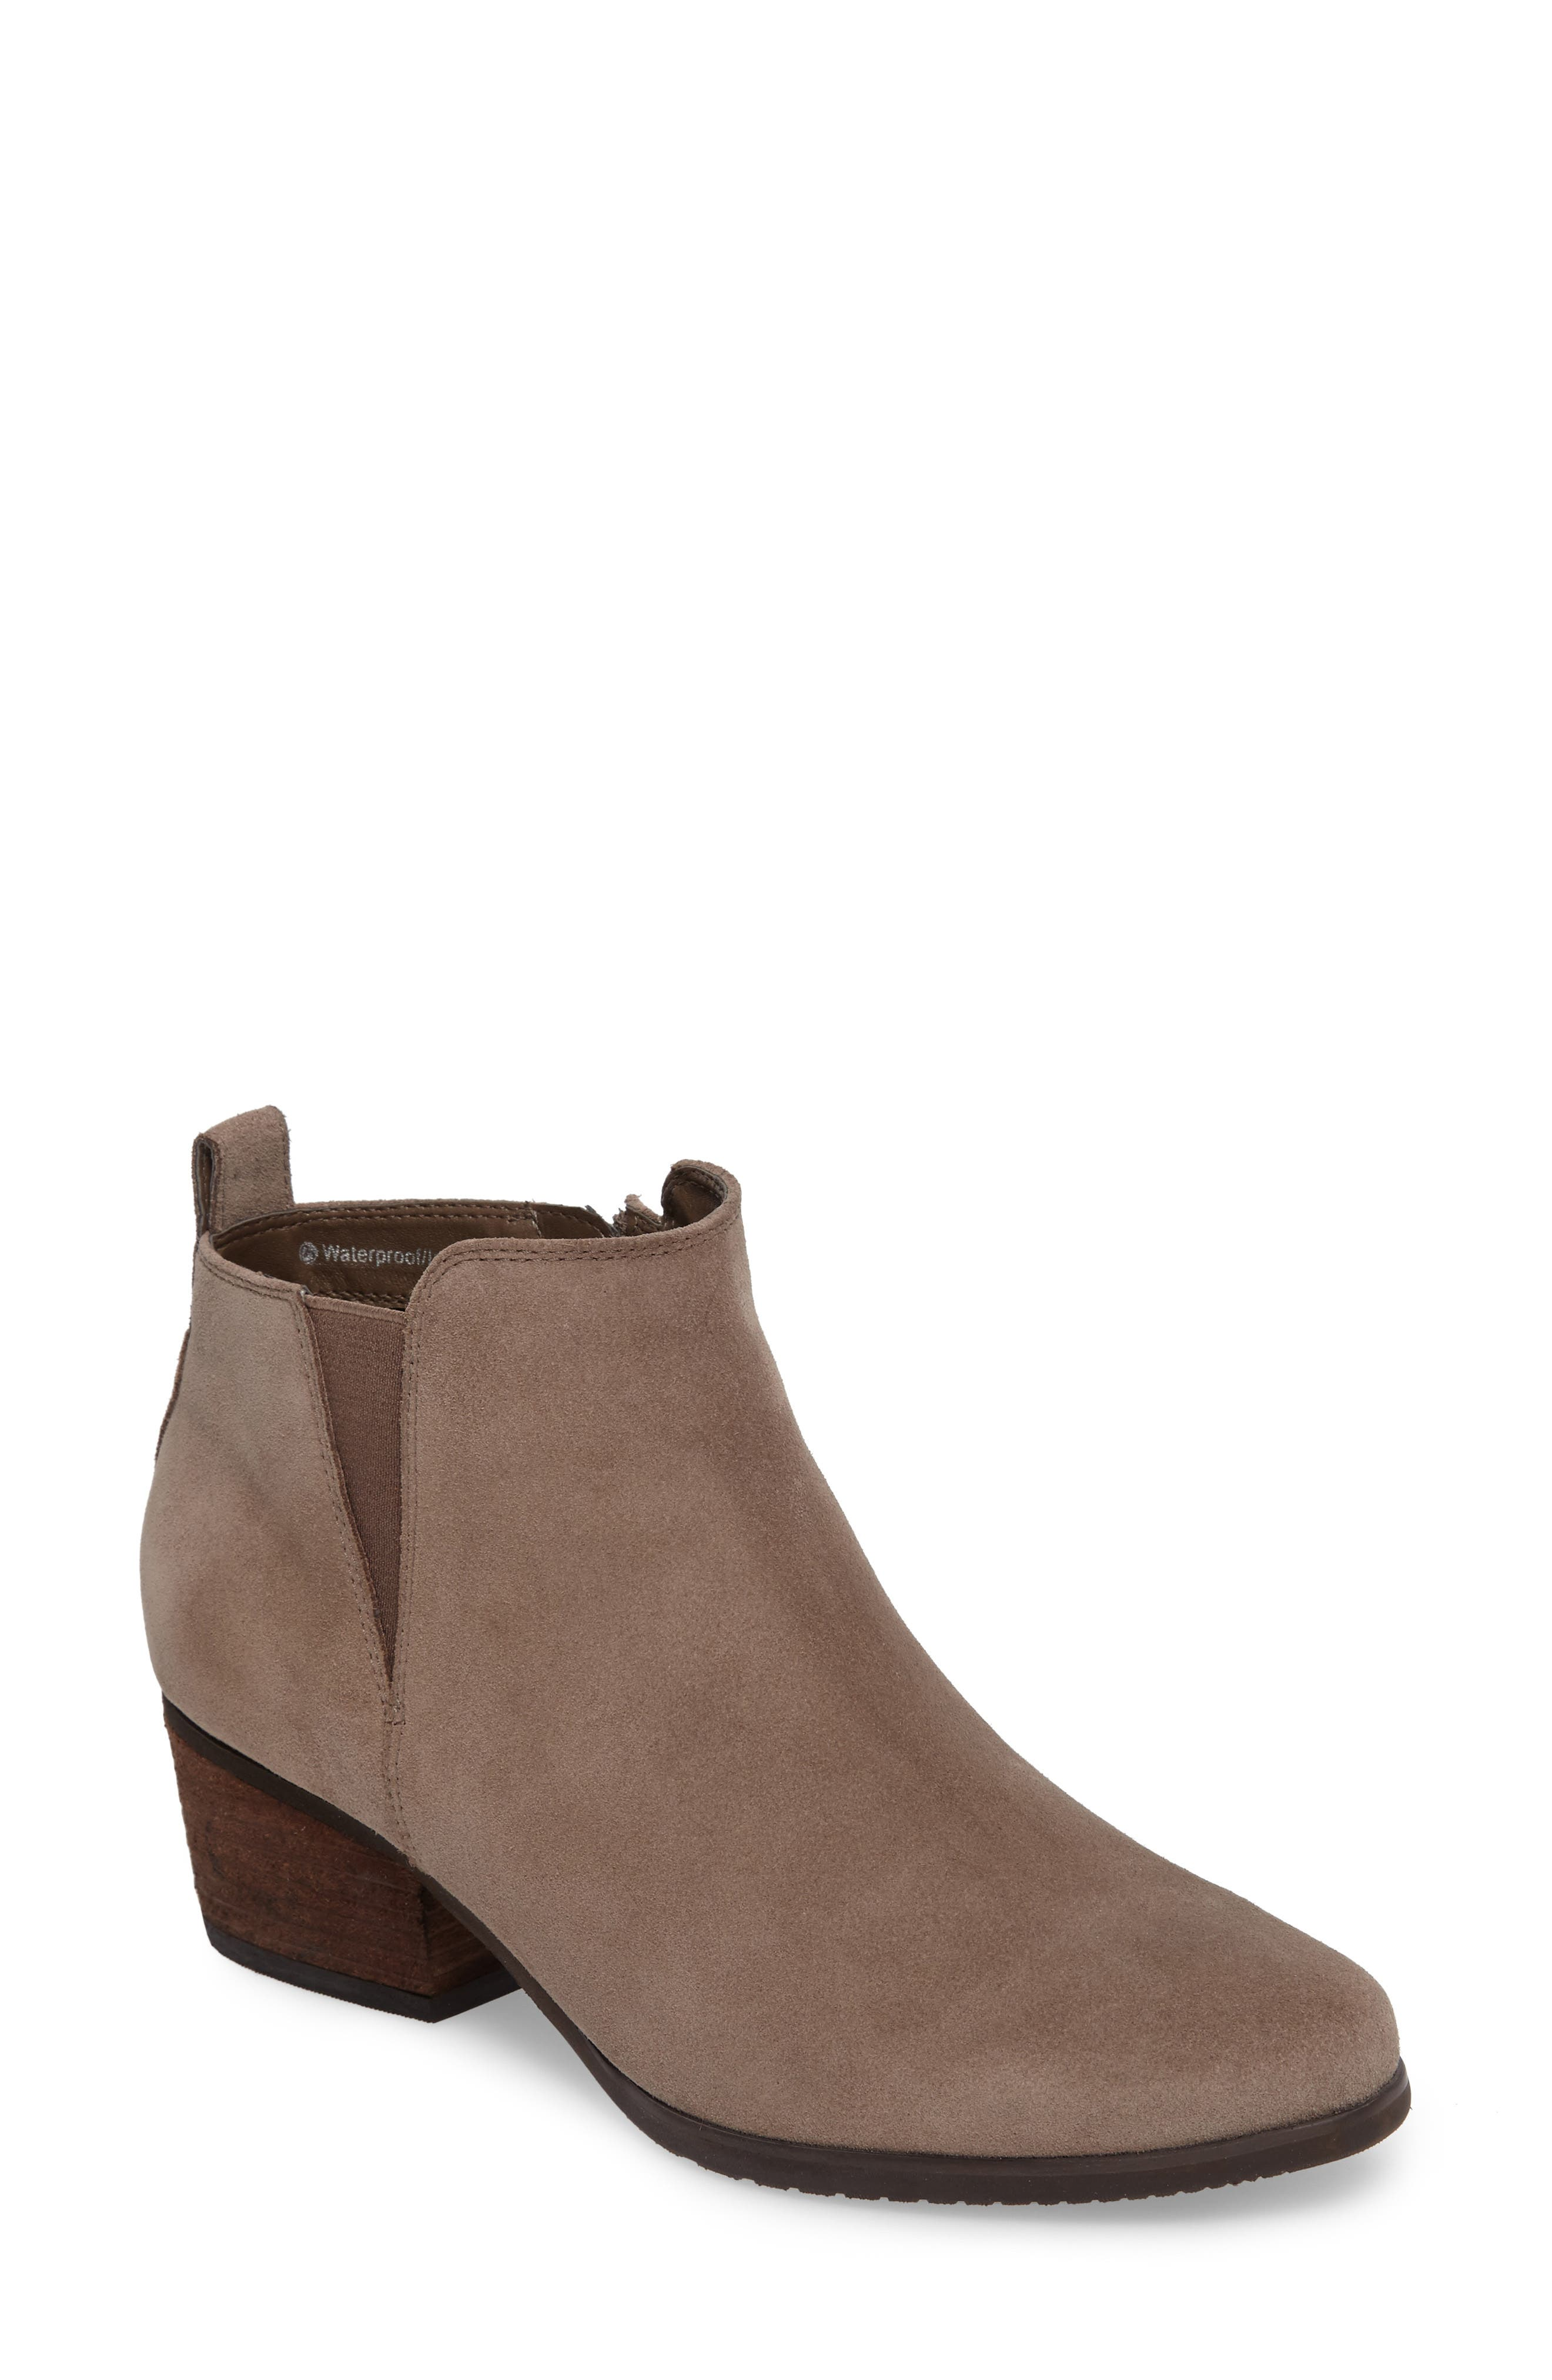 Blondo Ida Waterproof Bootie (Women)